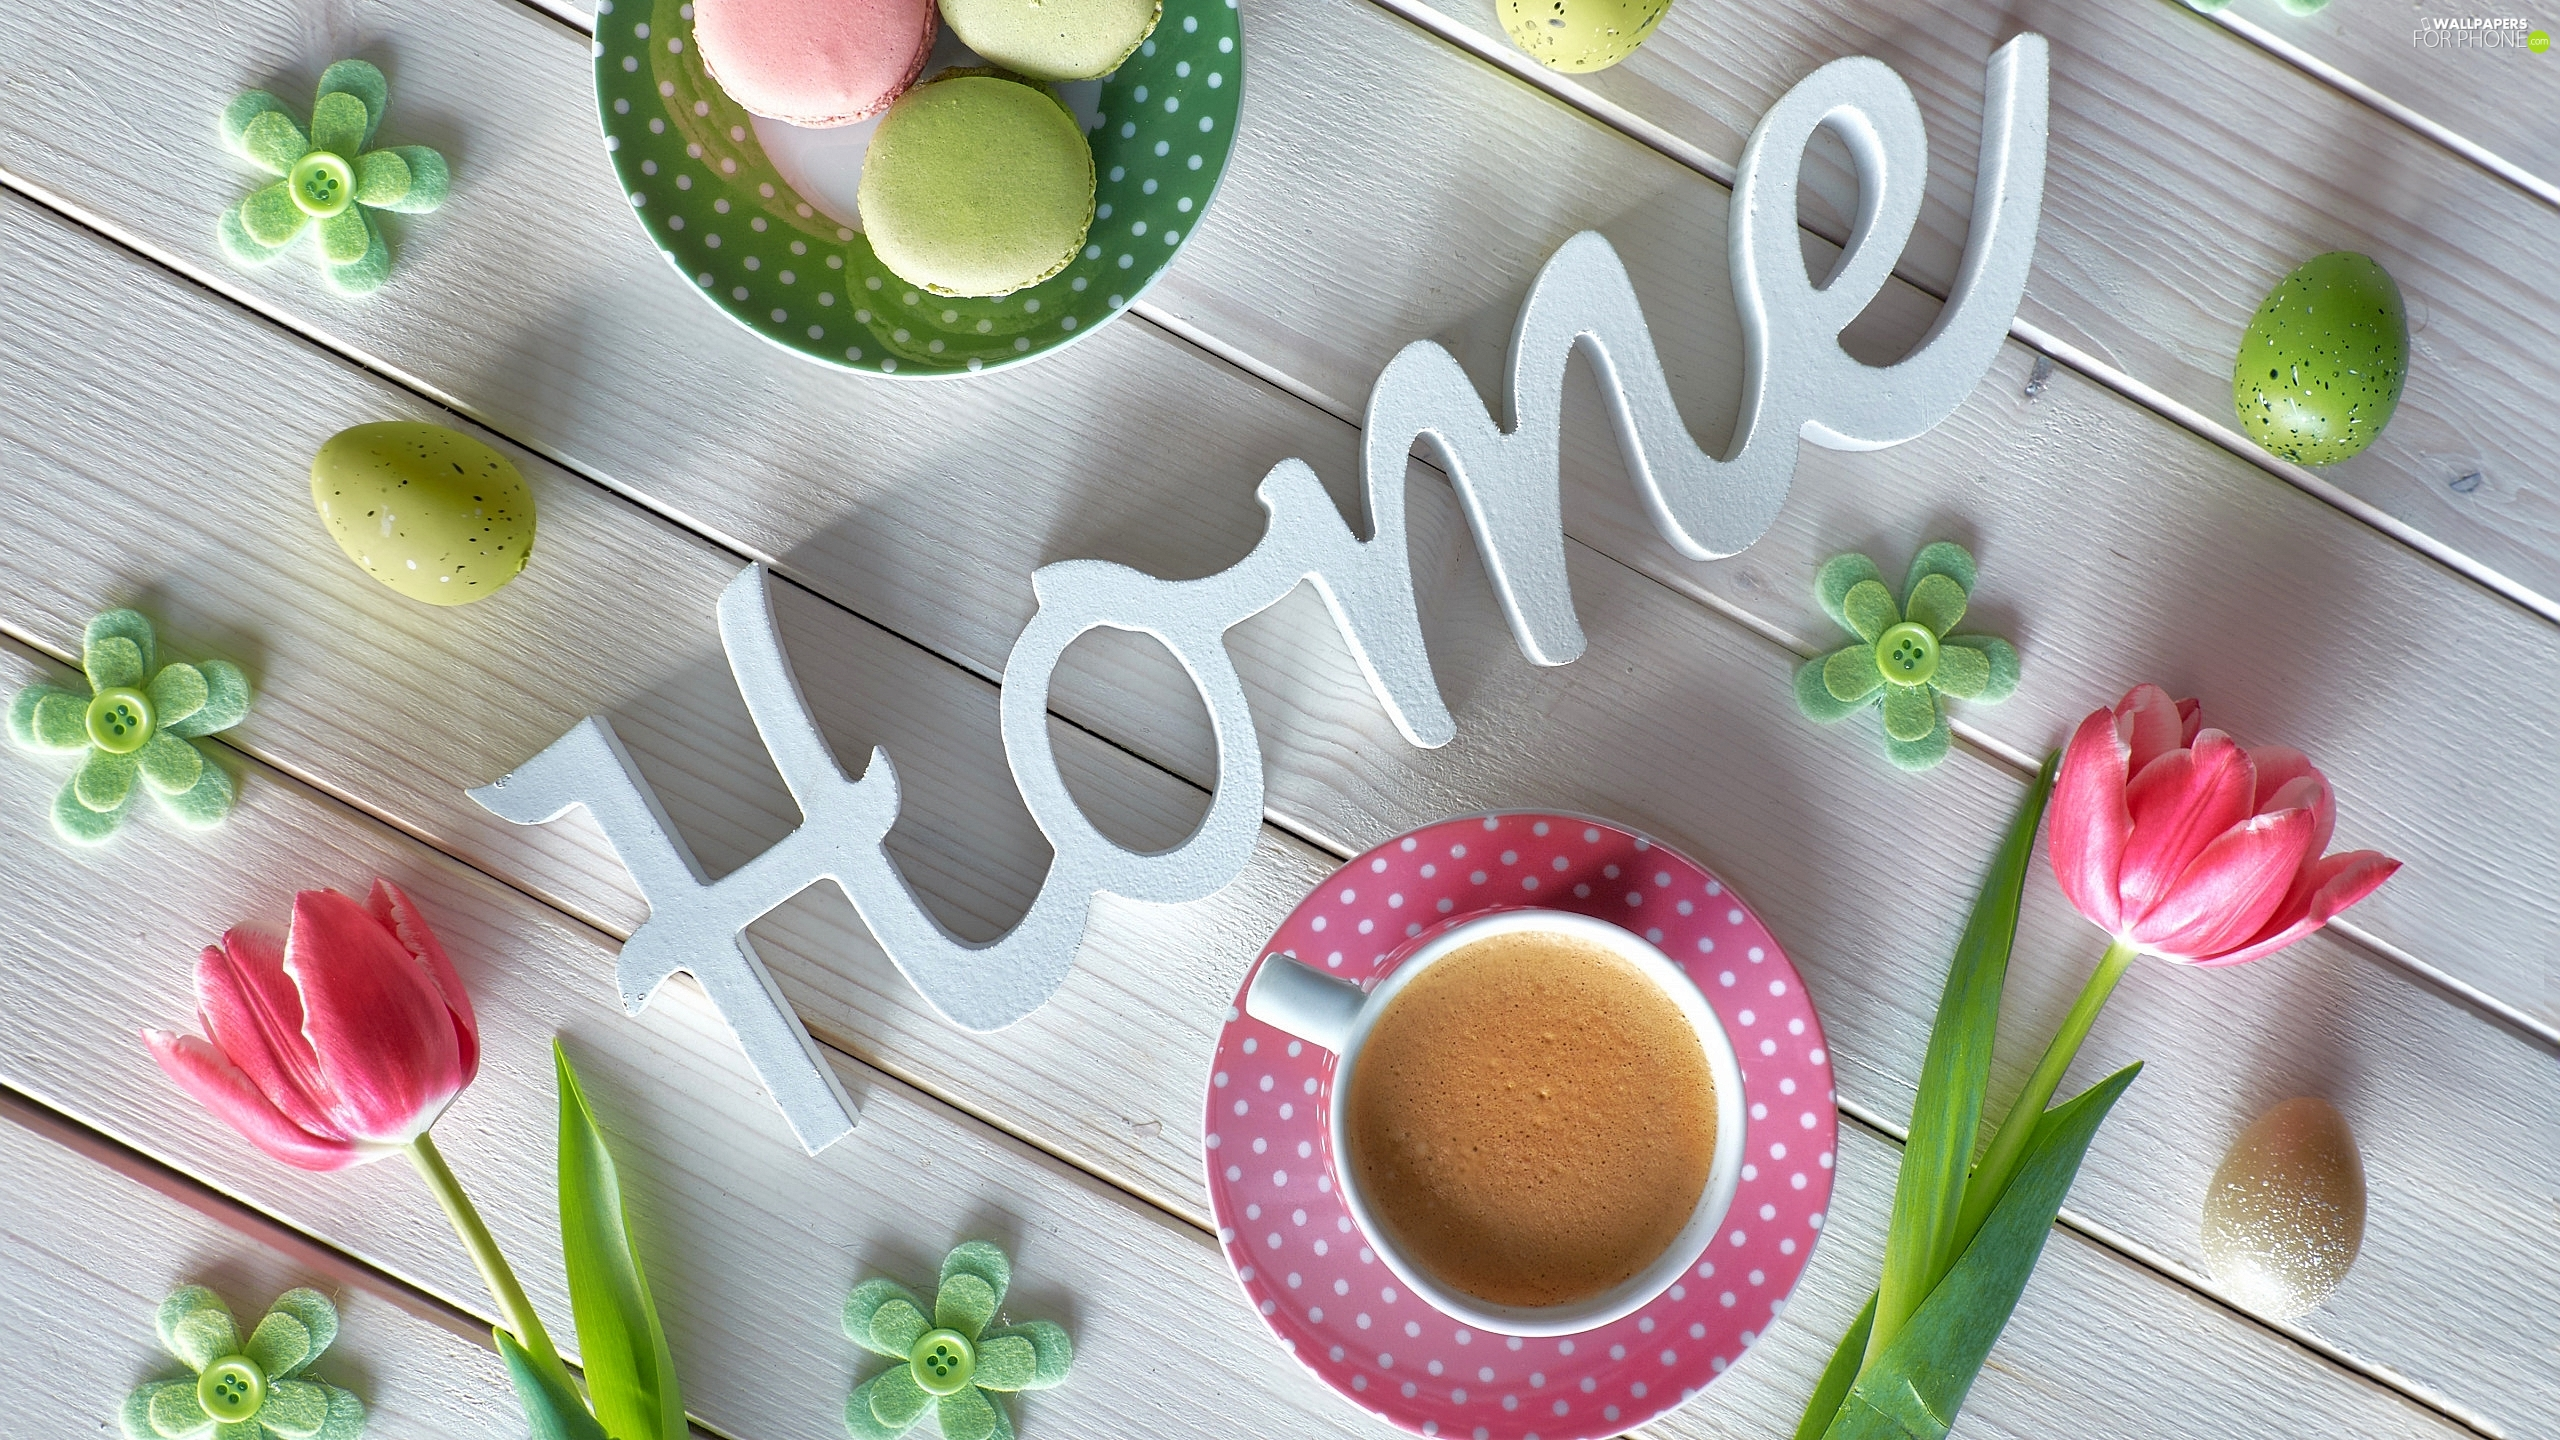 coffee, Cookies, text, Tulips, eggs, composition, boarding, cup, Macaroons, flowers, home